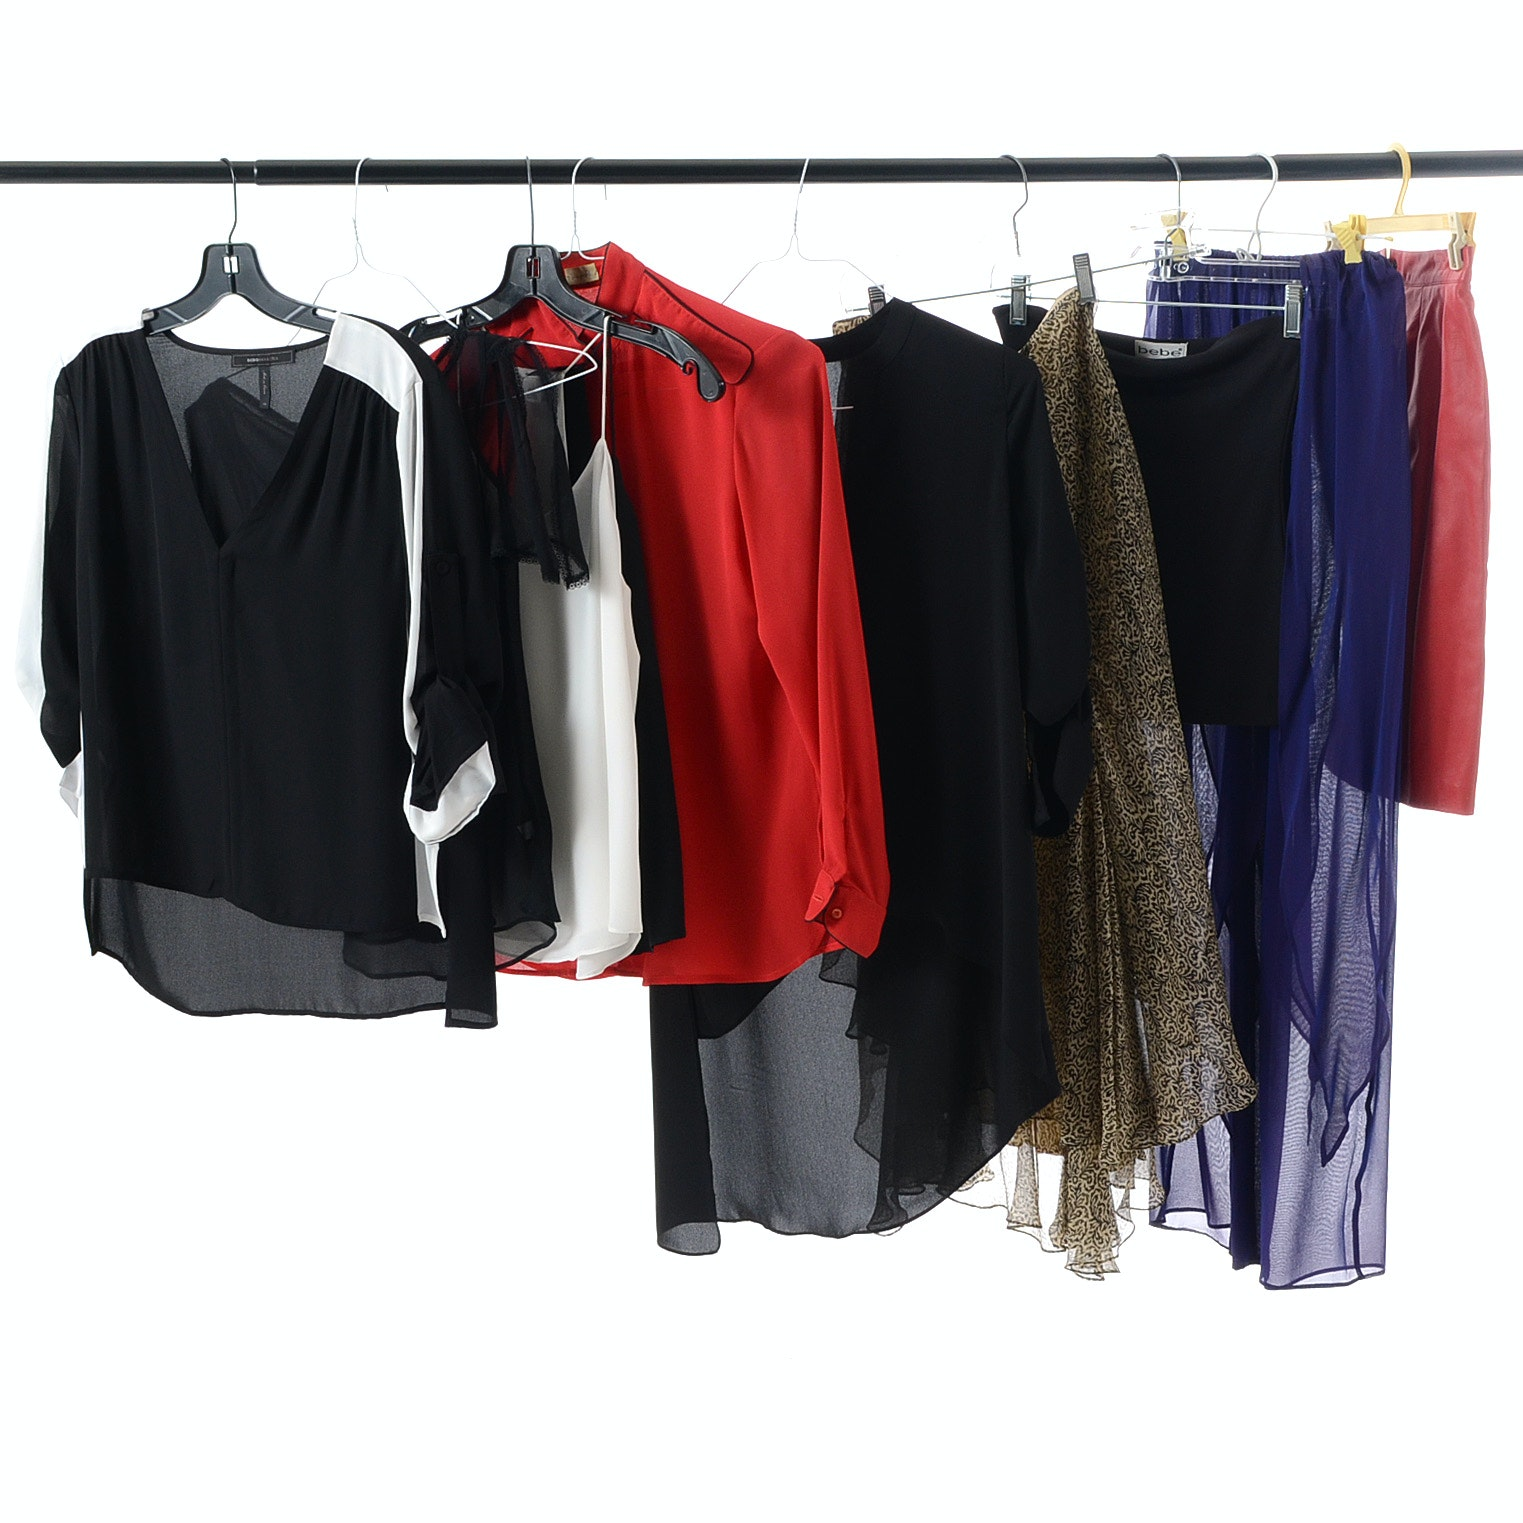 Assortment of Women's Clothing